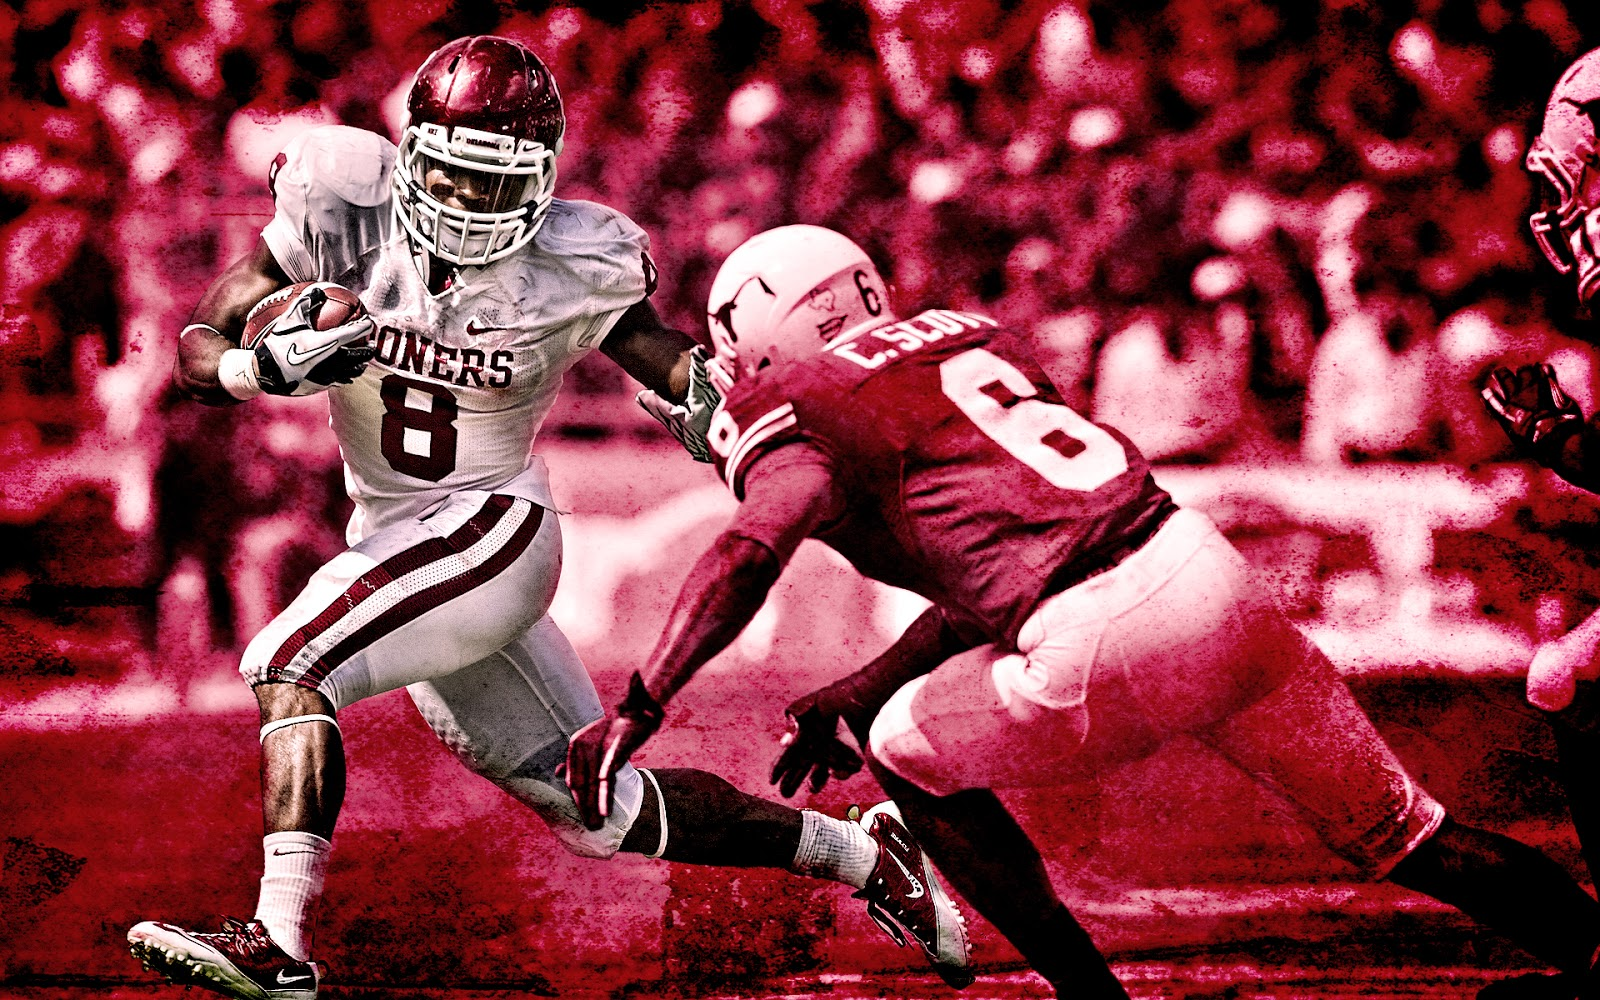 Oklahoma Sooners Download Wallpapers Sooner Wallpaper Oklahoma Gallery 1600x1000